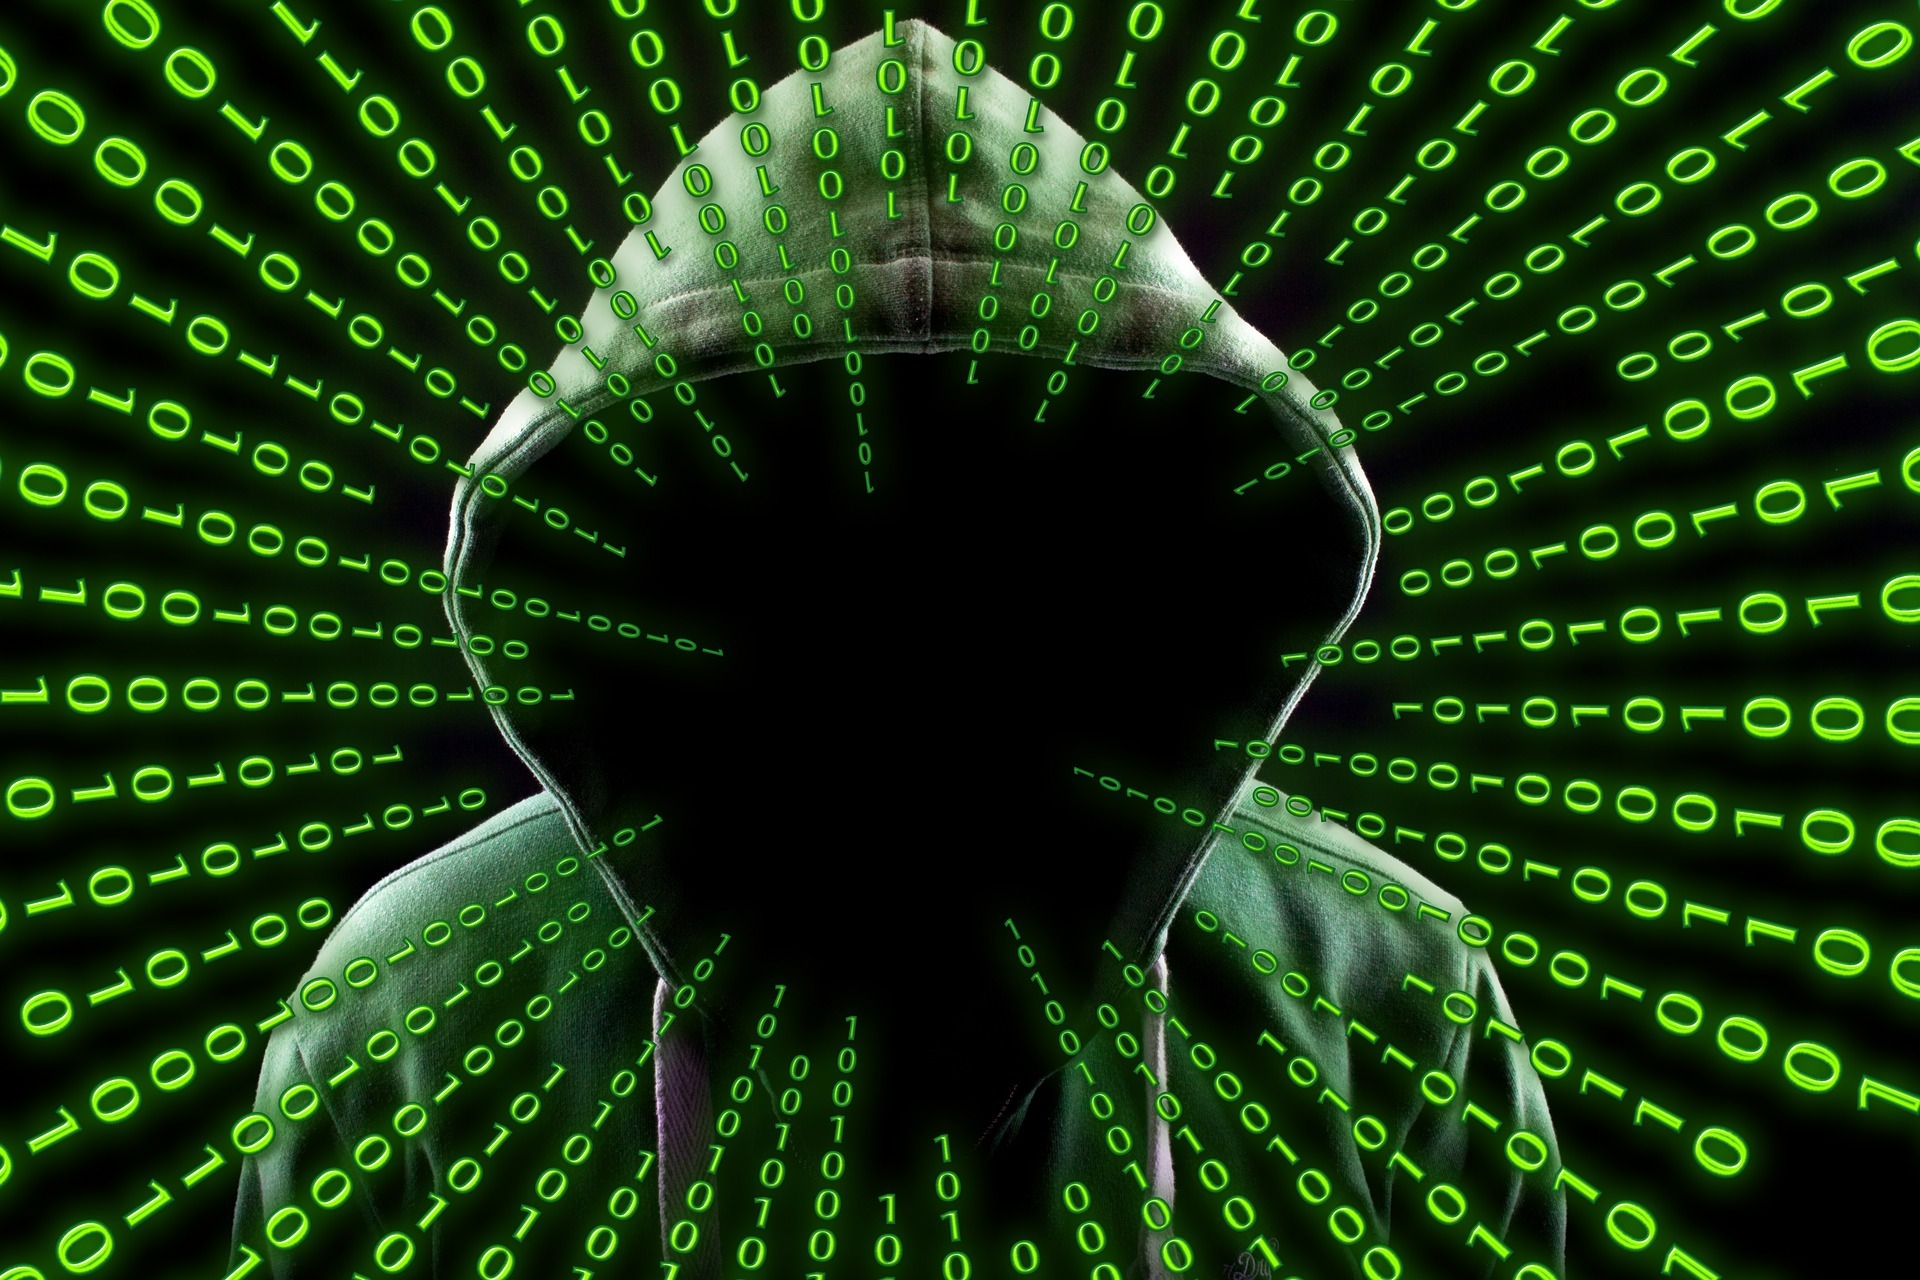 The Ultimate Guide to Identifying & Removing Malicious Software from your Computer